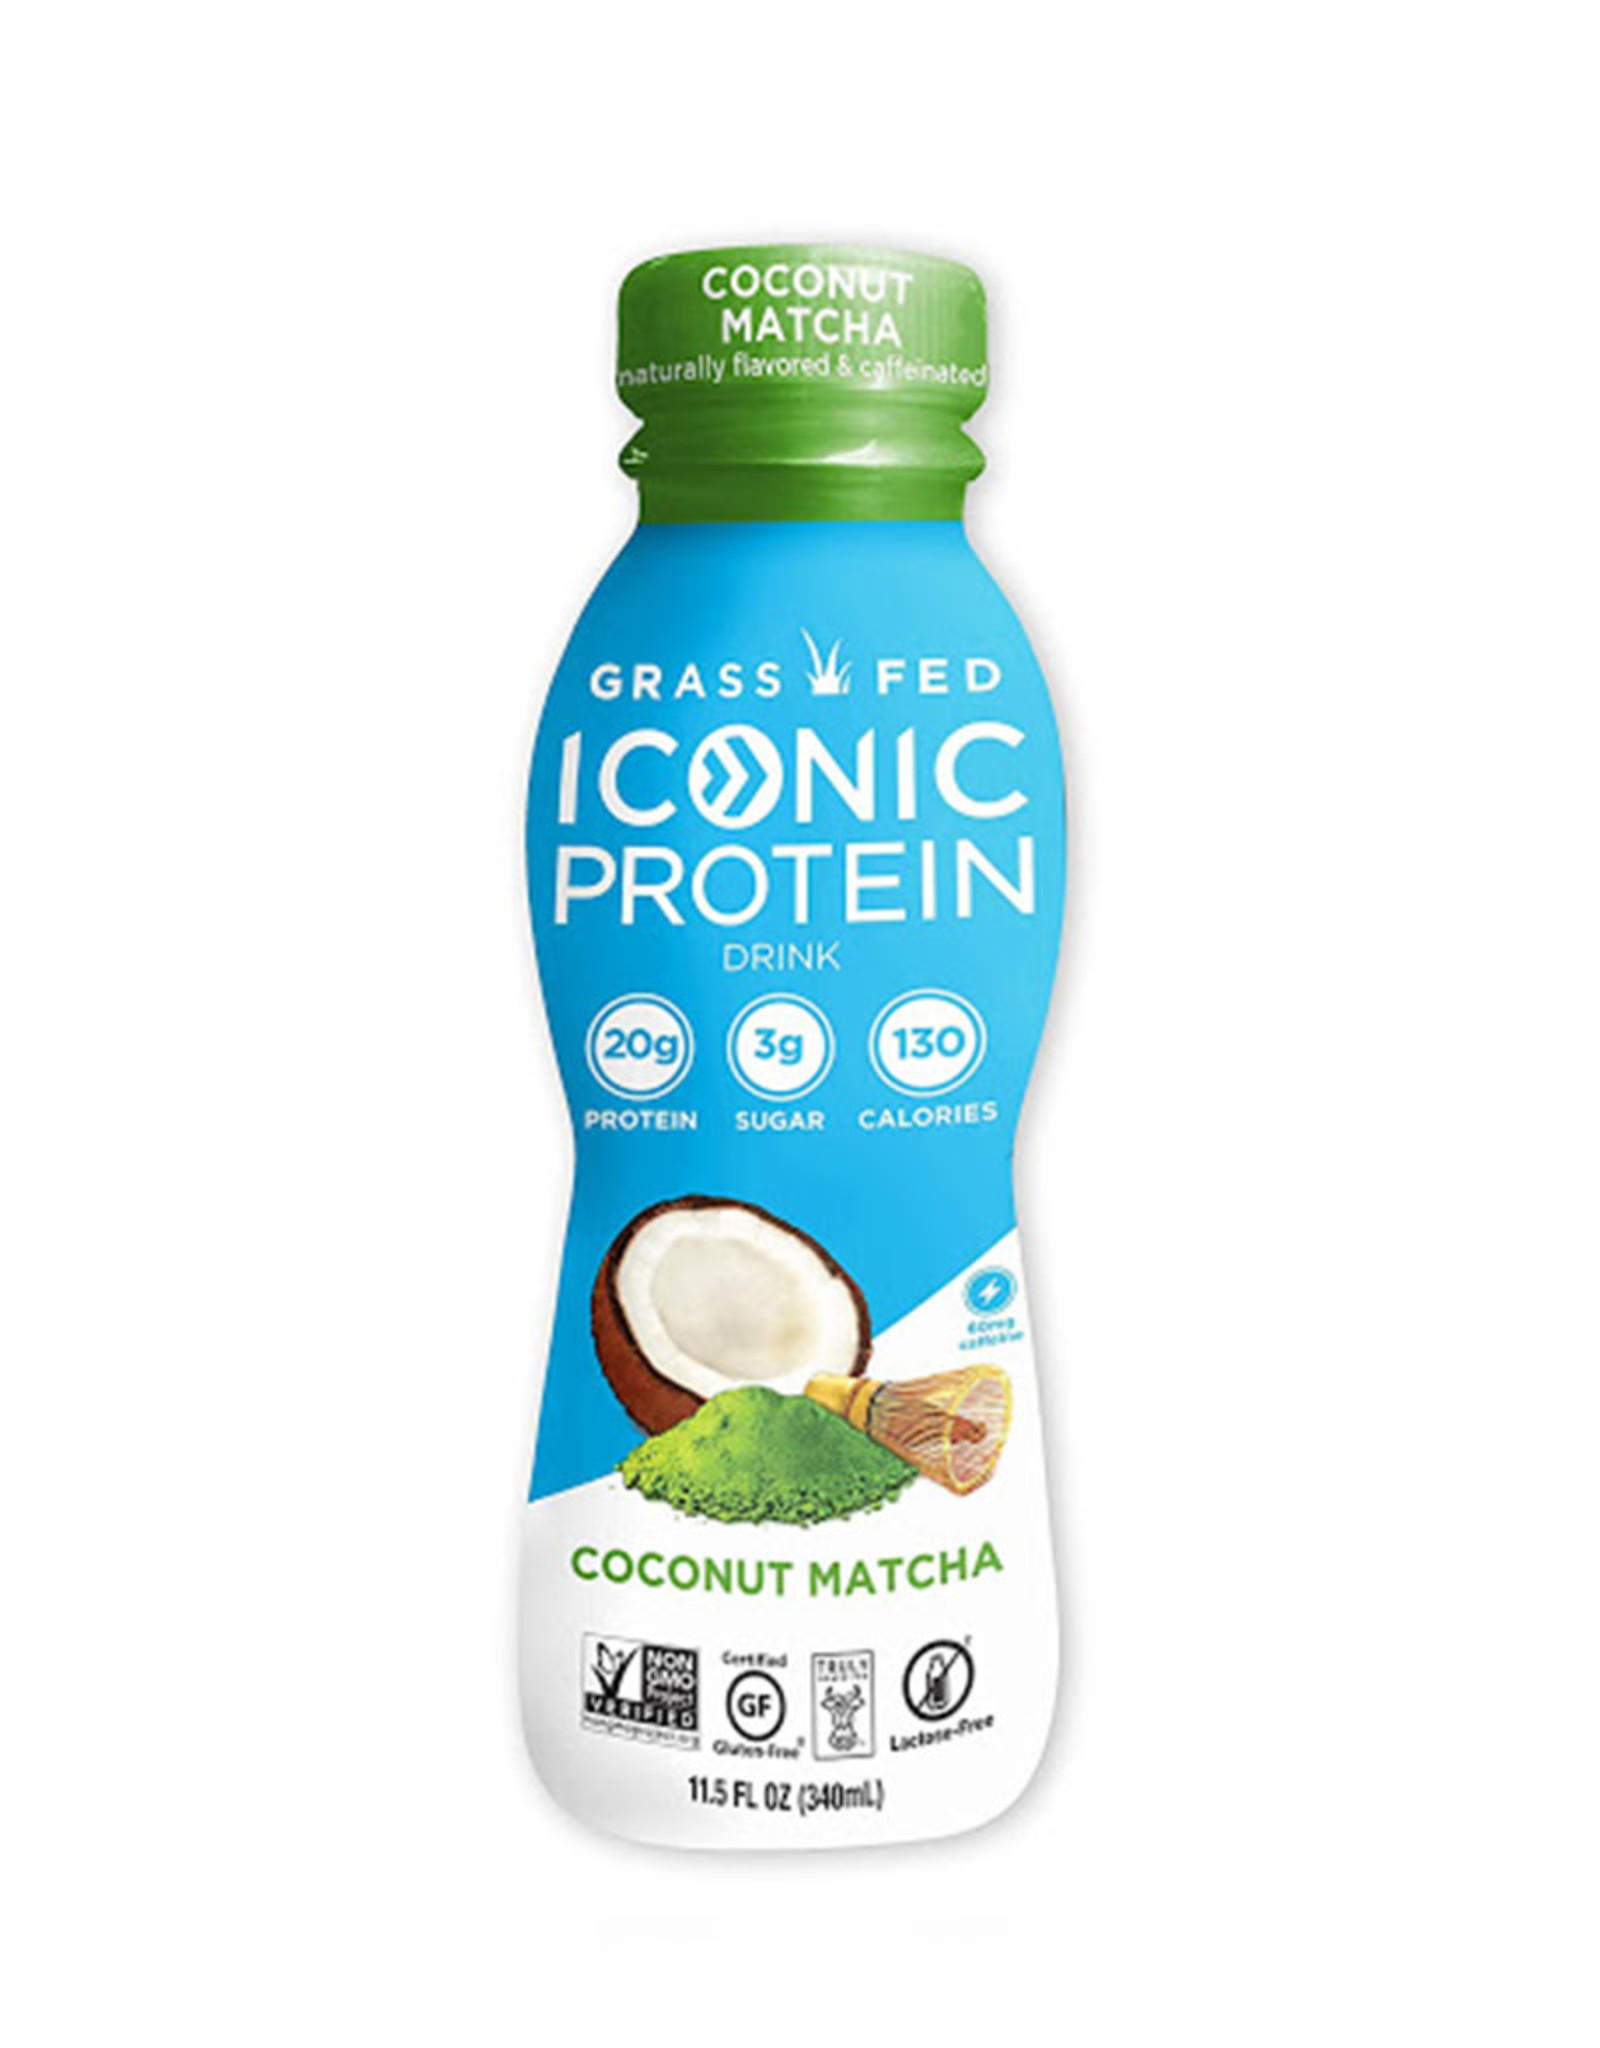 Iconic Protein Iconic Protein - Coconut Matcha